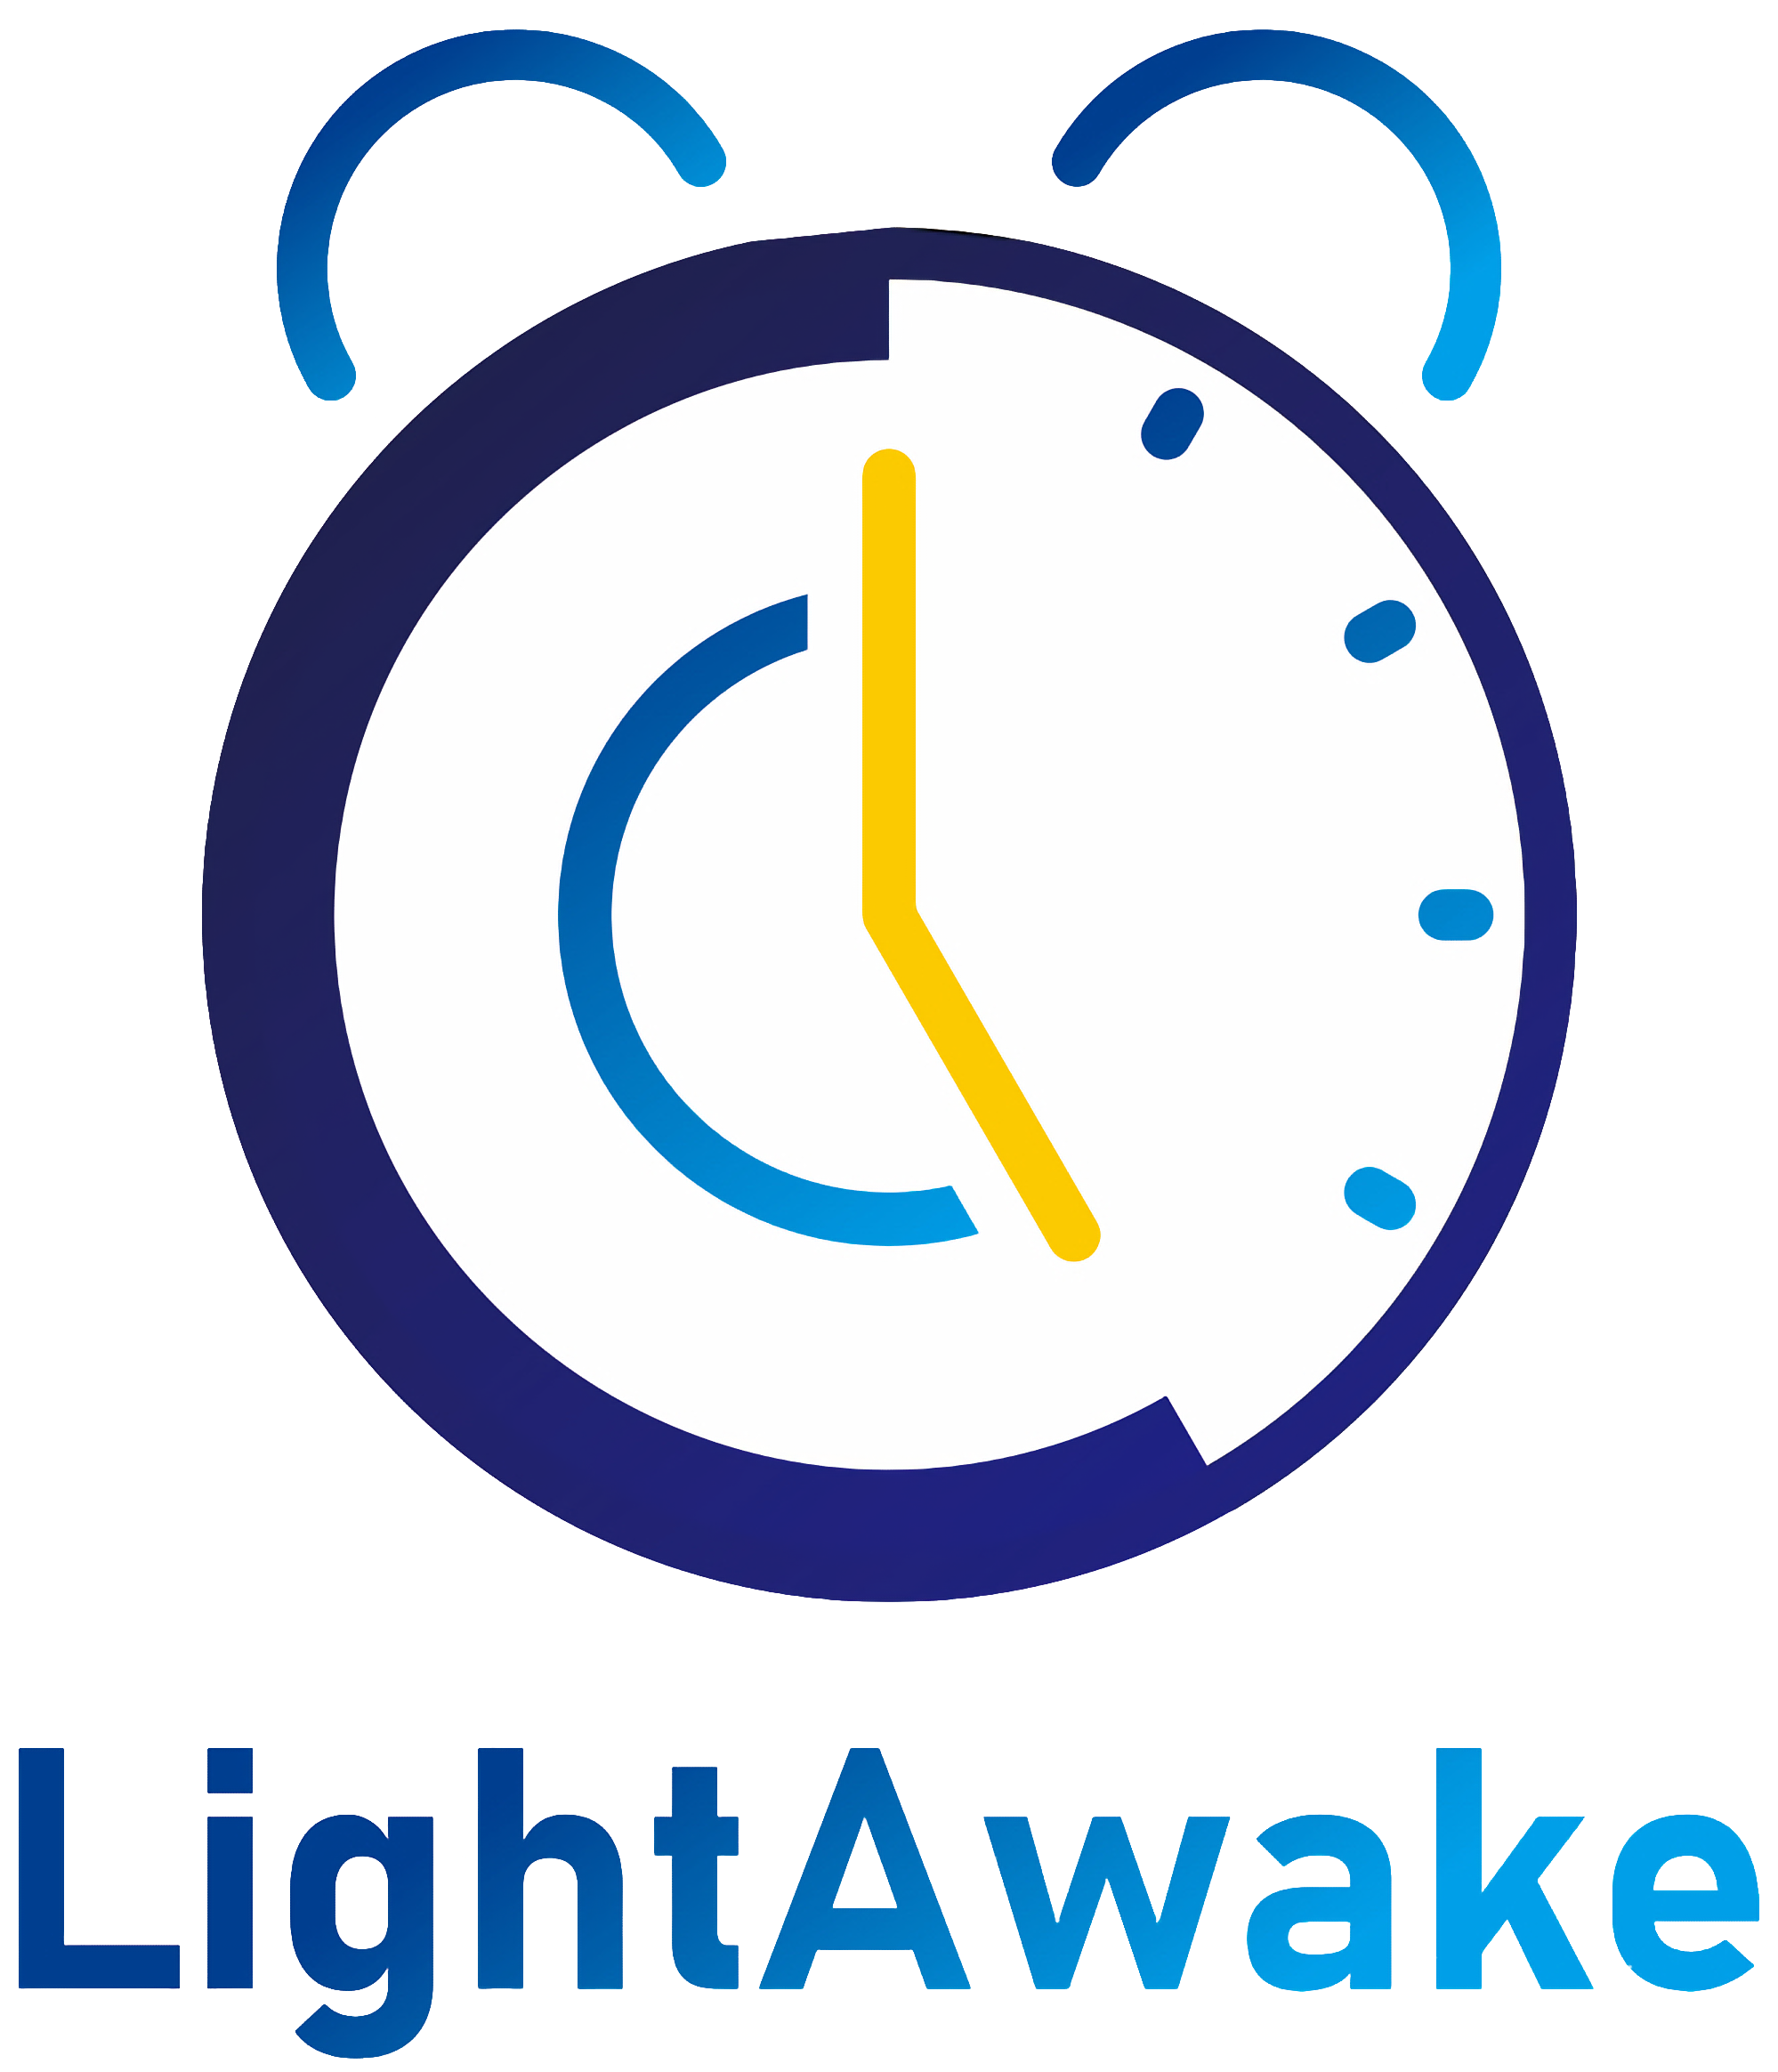 Light Awake Logo